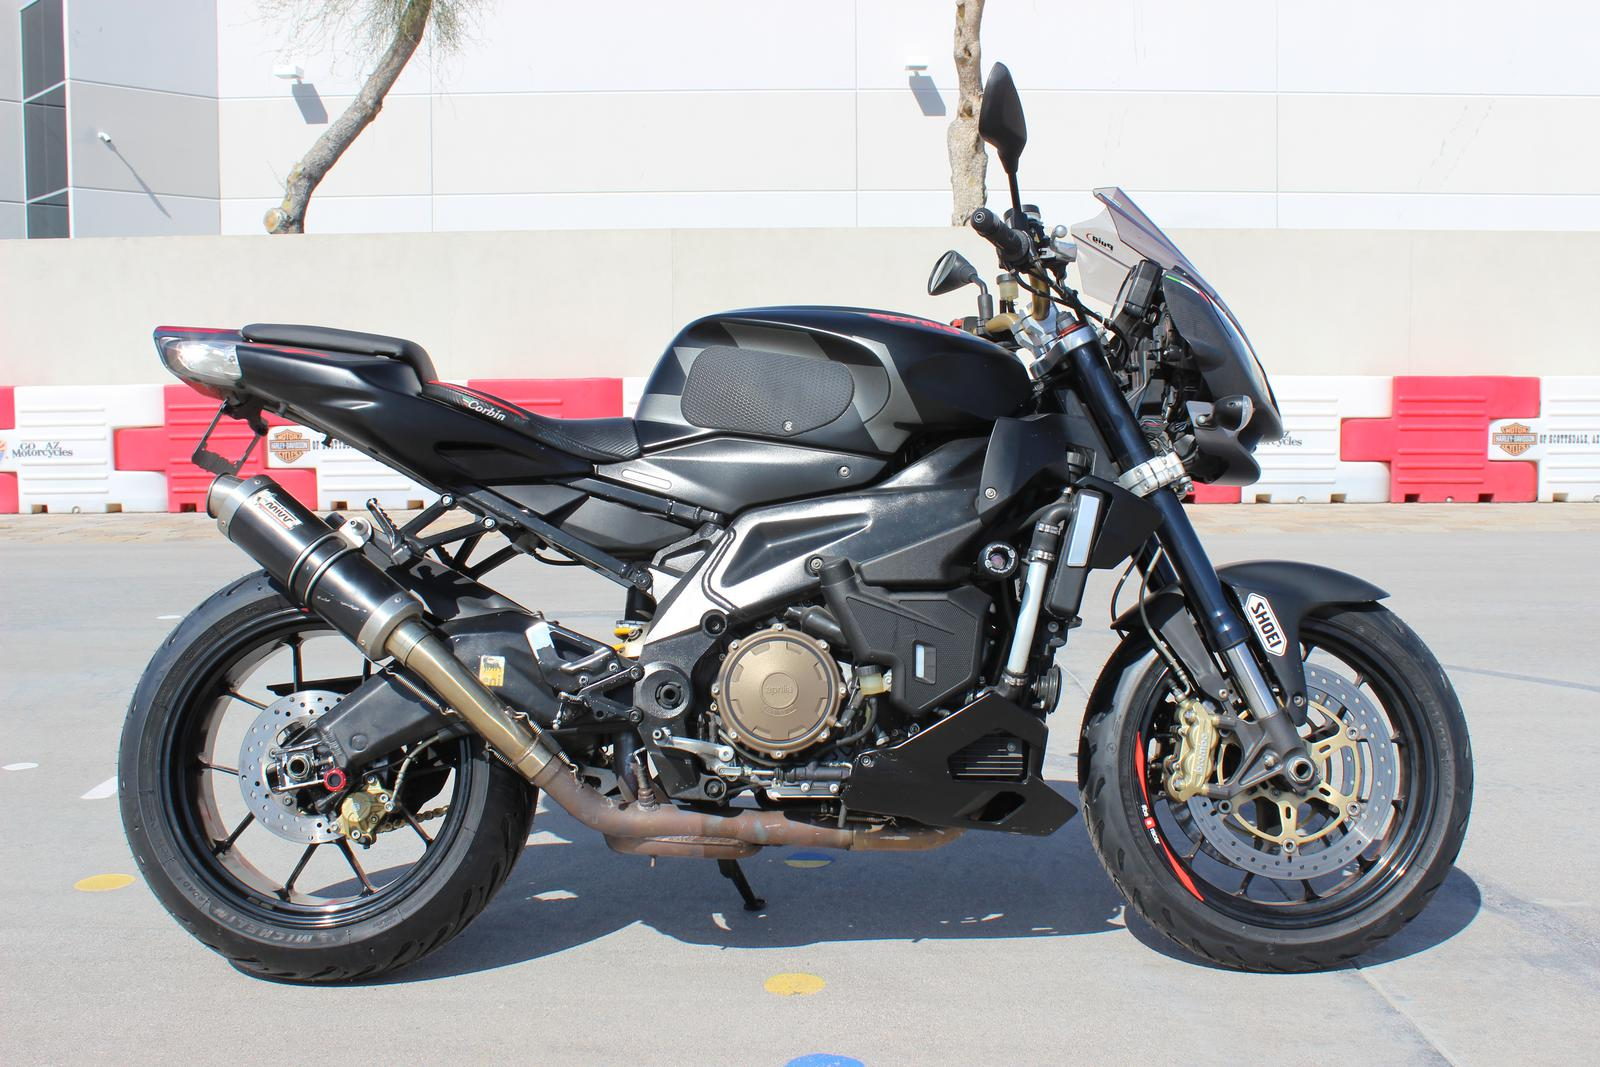 Inventory from Ural and Aprilia GO AZ Motorcycles in